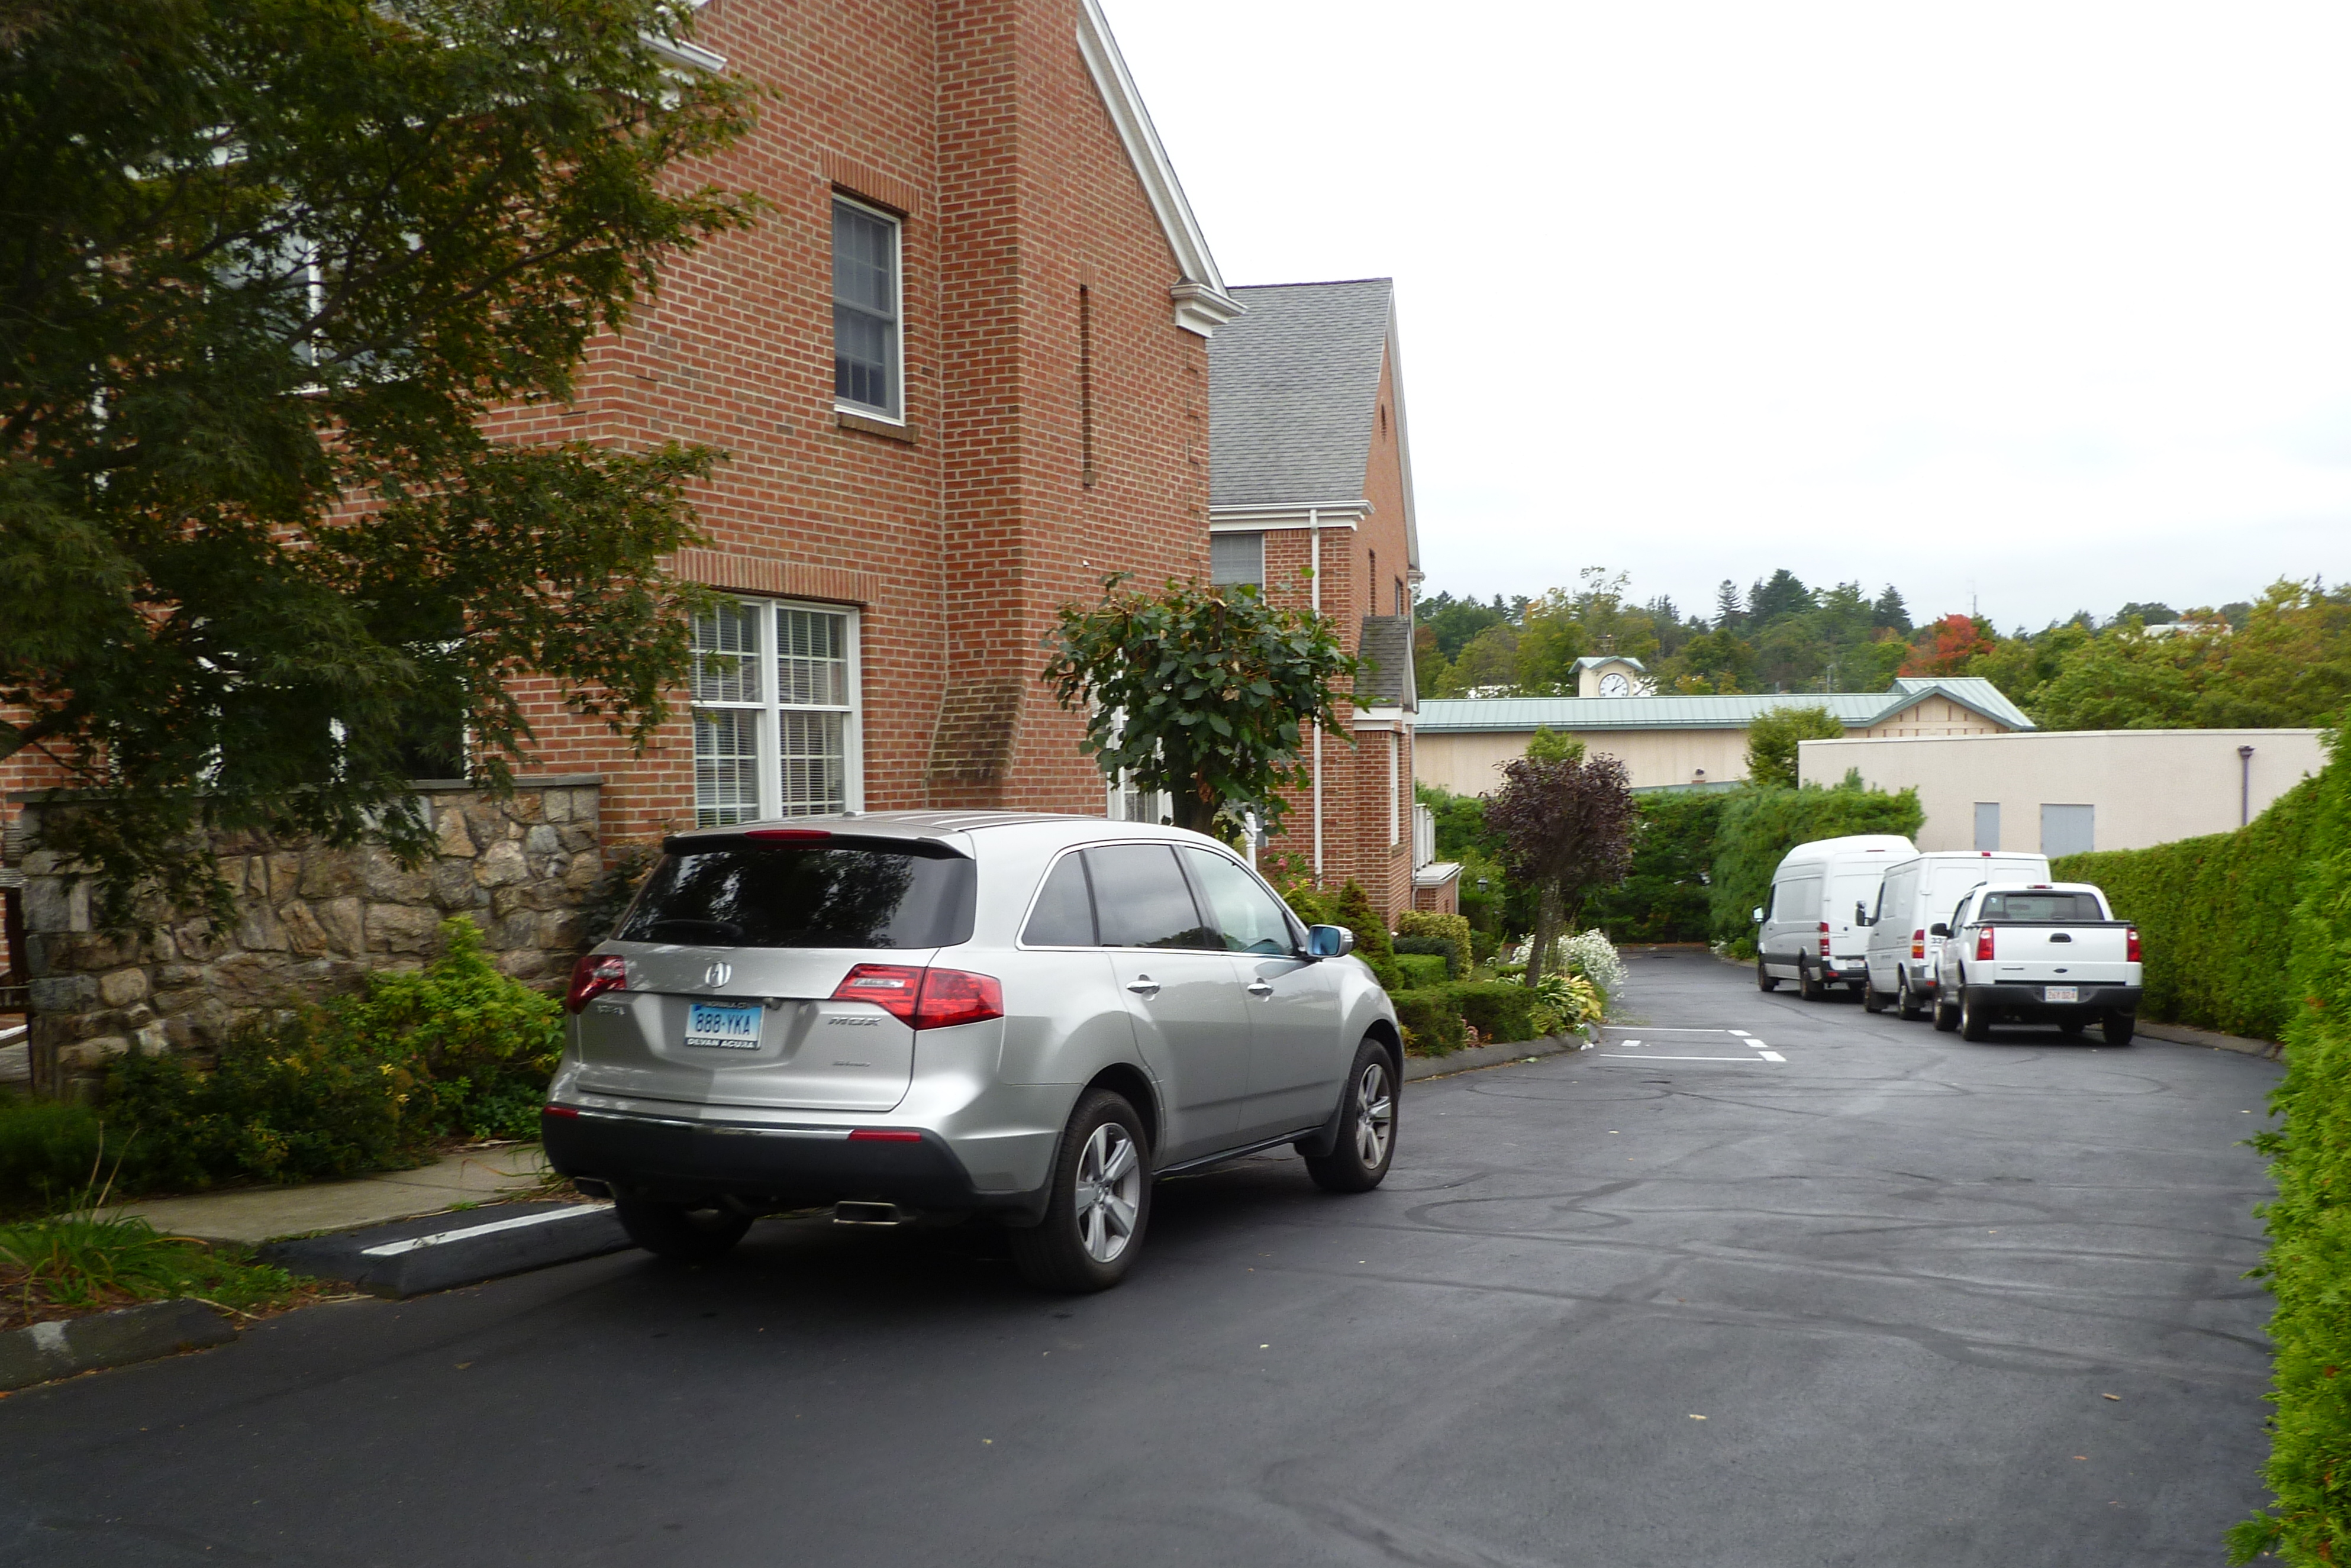 New Canaan Police responded to a call of shots fired Sept. 21 at this condominium complex on Park Street. It was later determined that James Owen shot and killed his wife, Billie D. Falgout-Owen, before shooting himself.